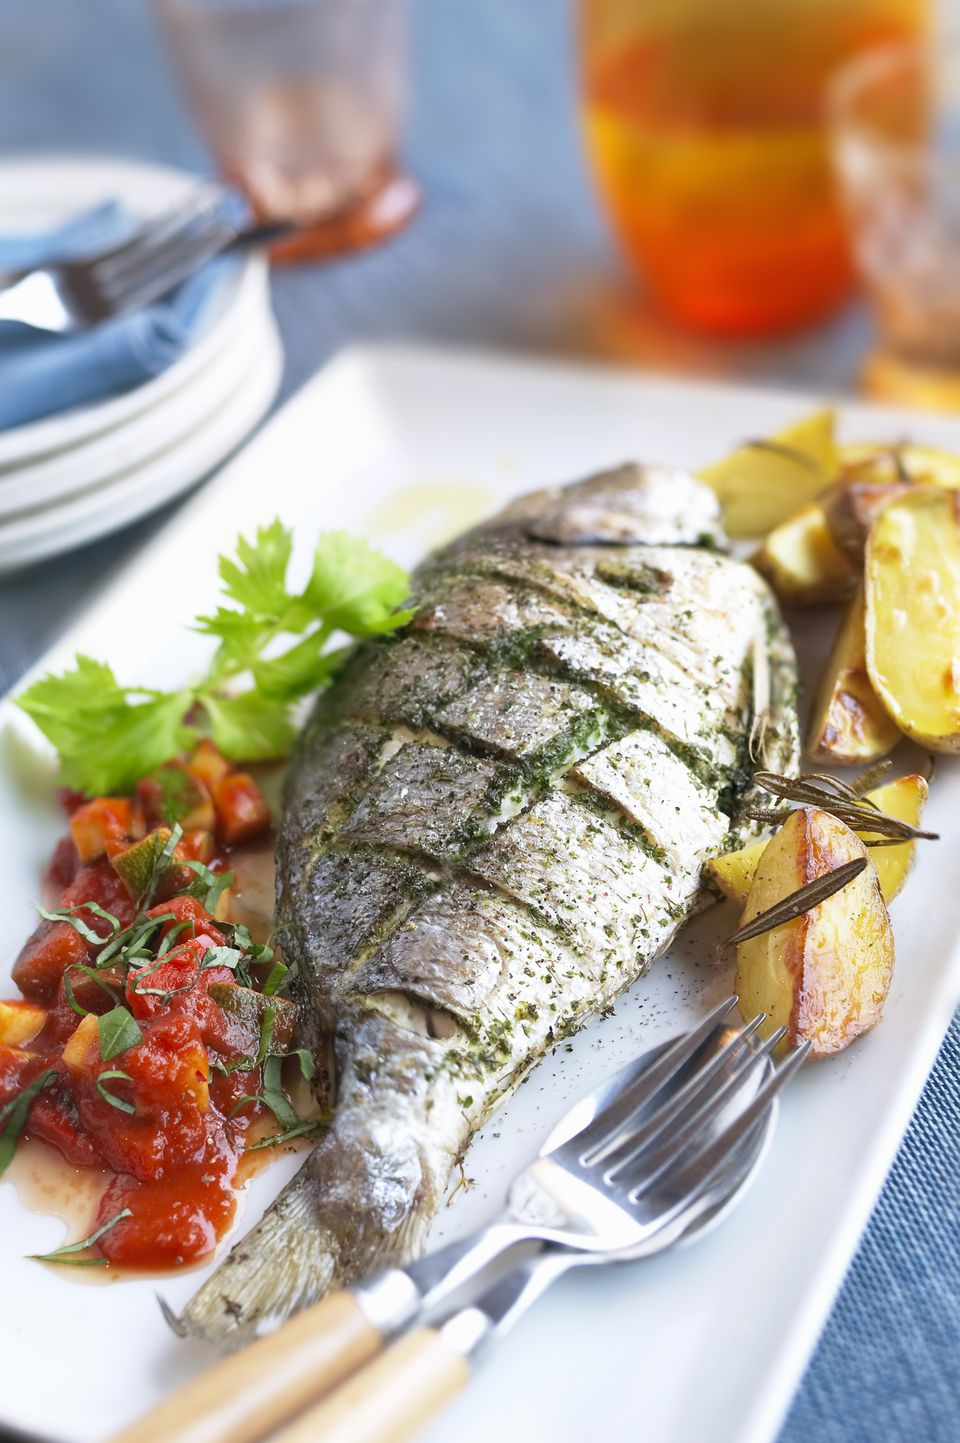 A whole roast fish with rosemary and herbs